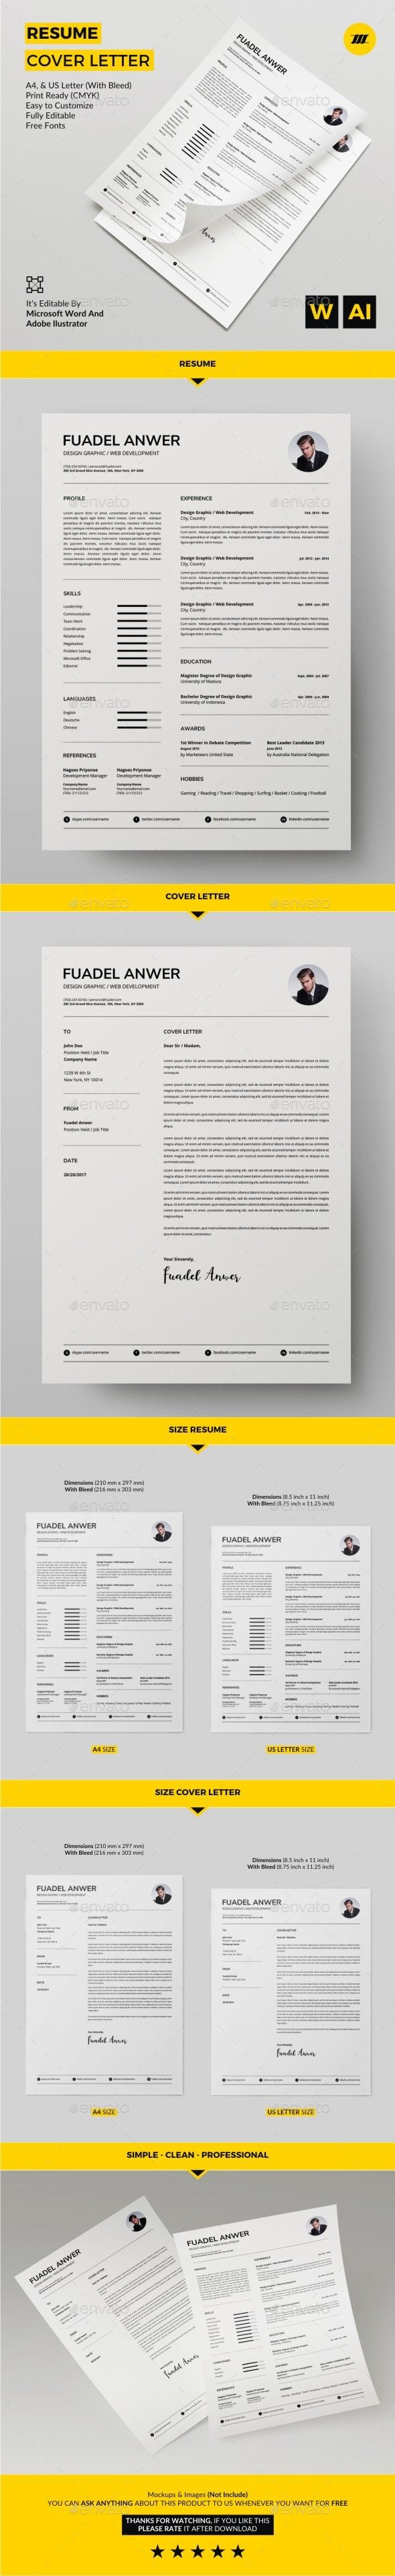 253 best Resume images on Pinterest | Resume templates, Resume ...